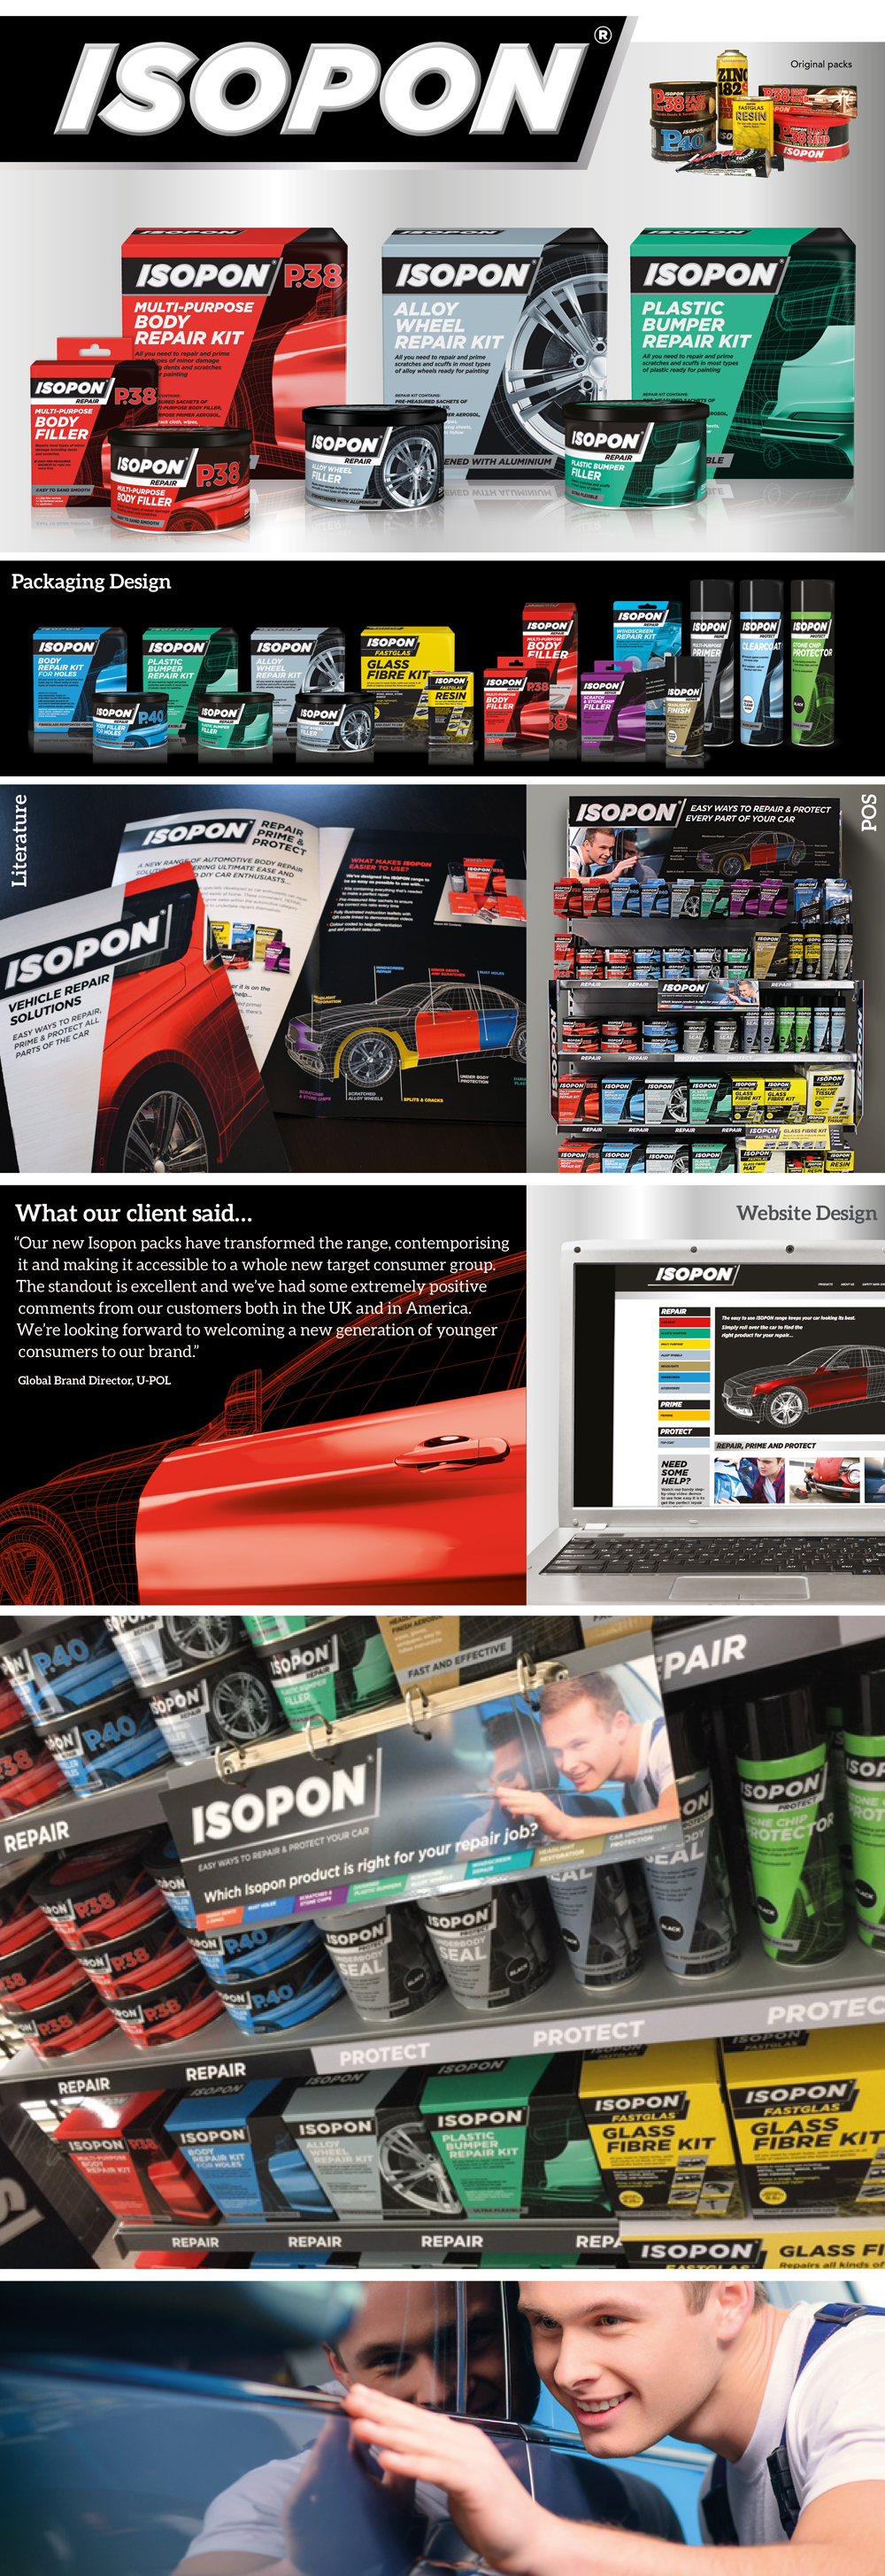 Isopon Auto Repair Products - Design Group International